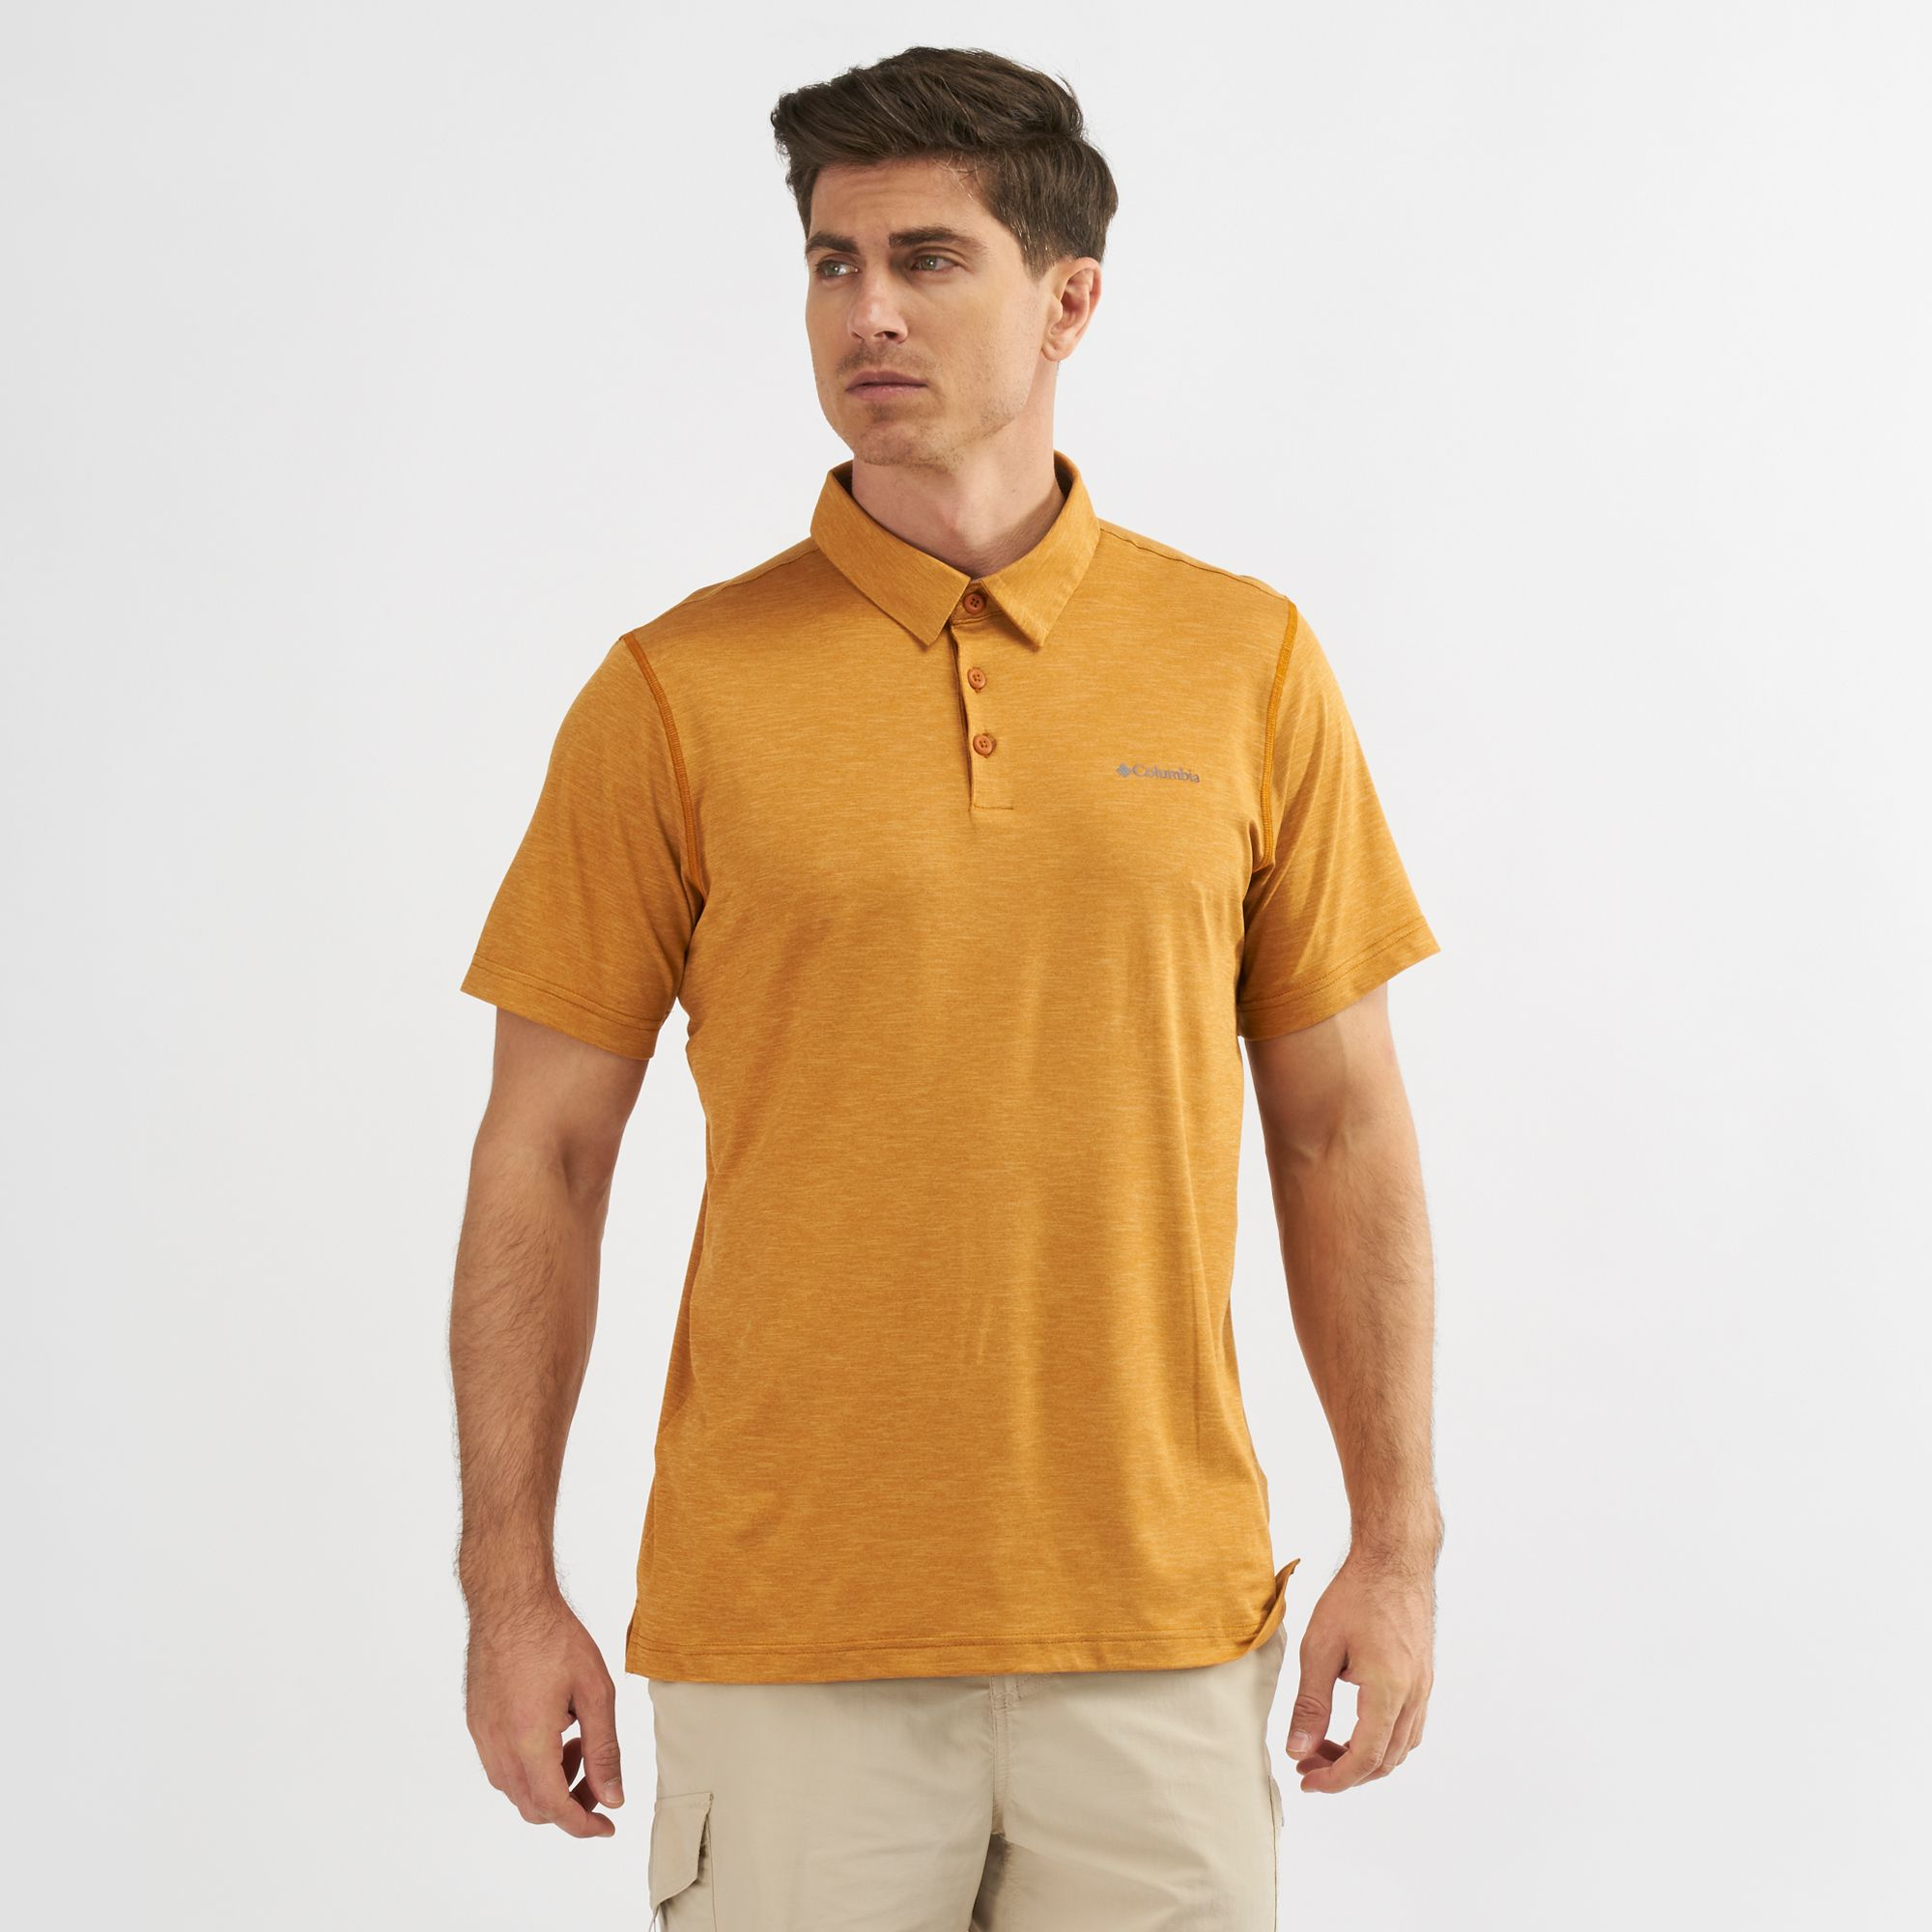 9521548d70e Shop Yellow Columbia Tech Trail™ Polo T-Shirt | Polo Shirts | Tops ...